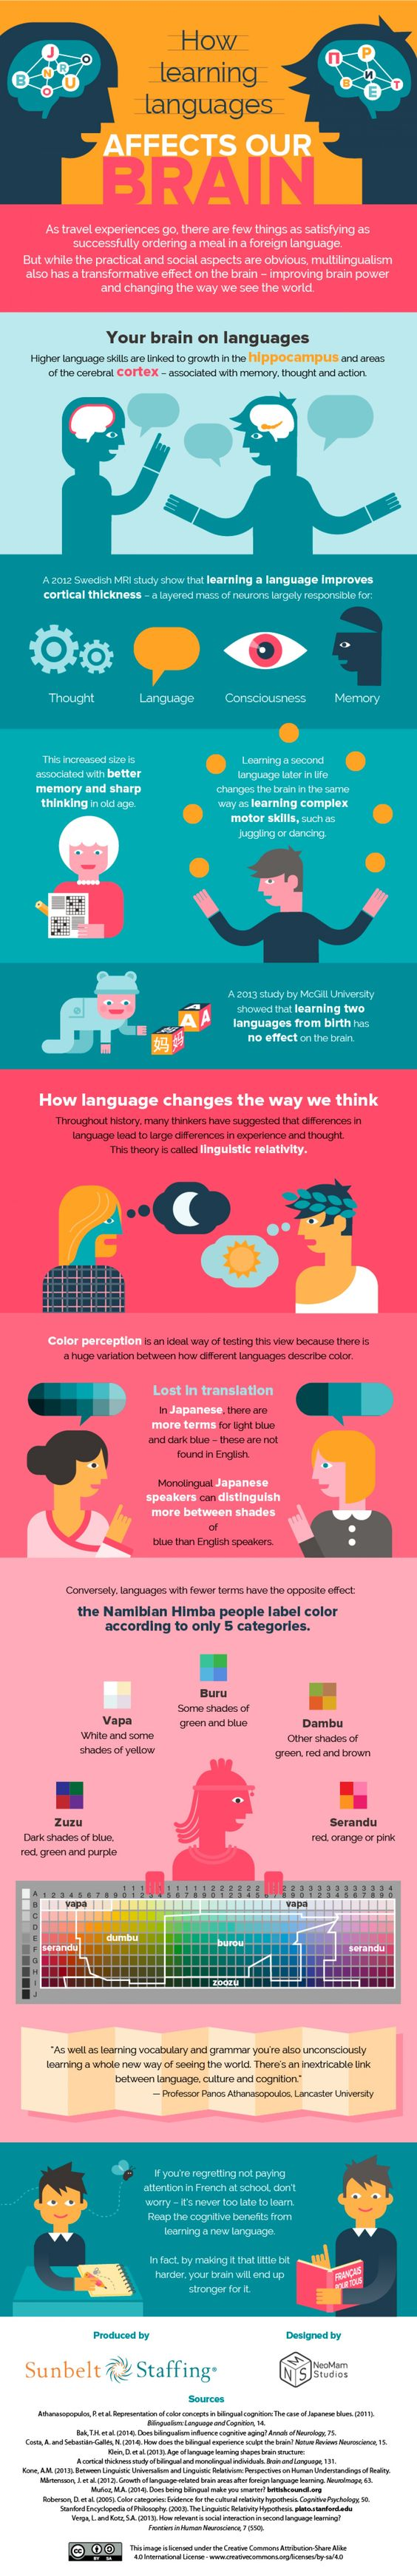 Language and the Human Brain - News-Medical.net